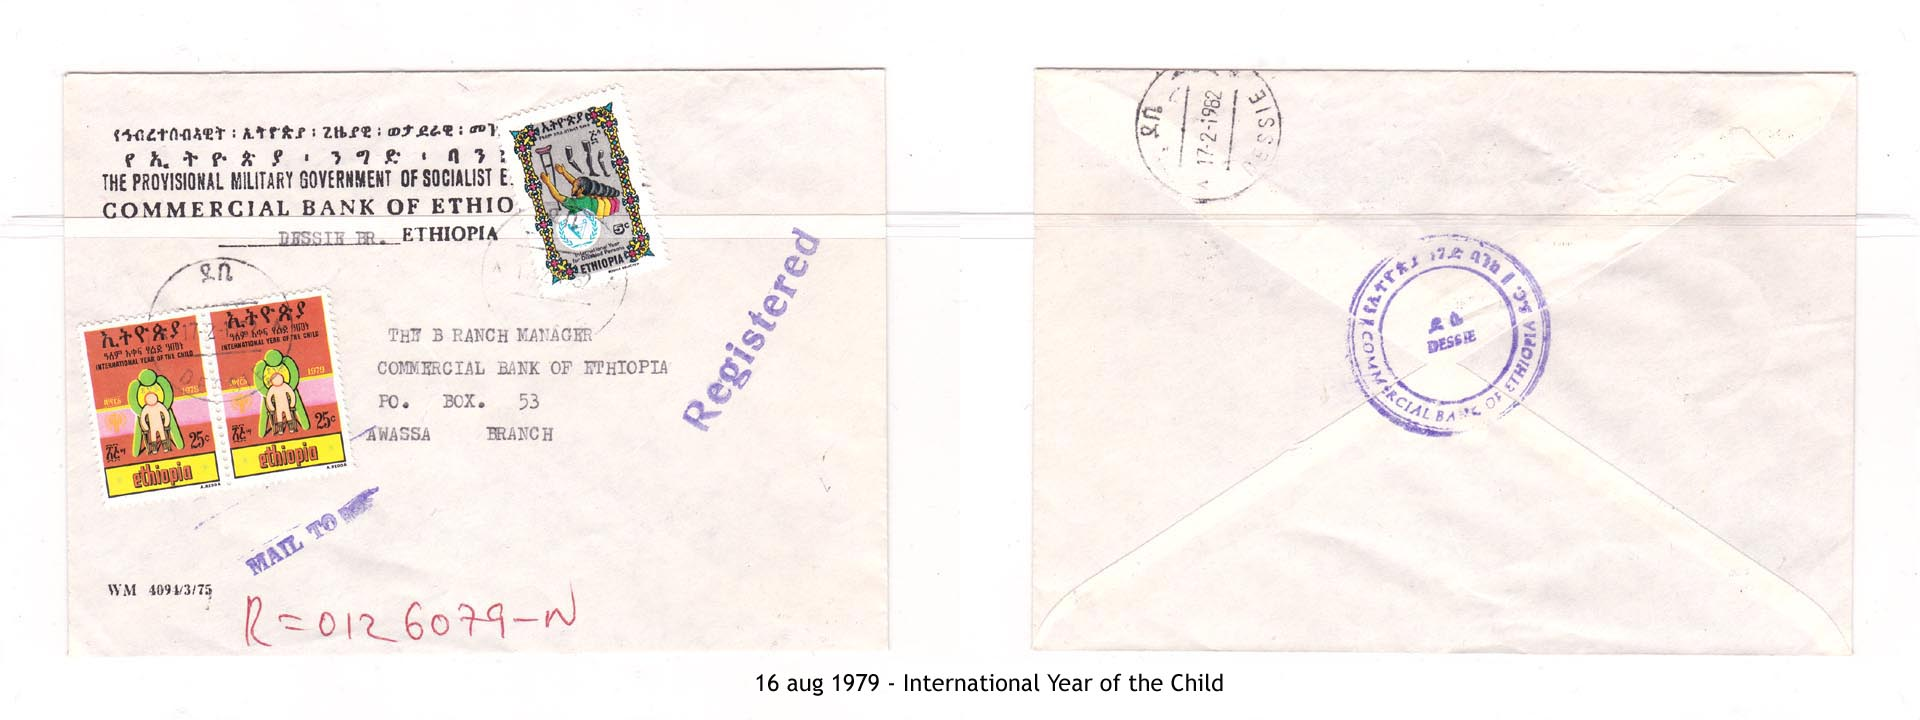 19790816 - International Year of the Child z